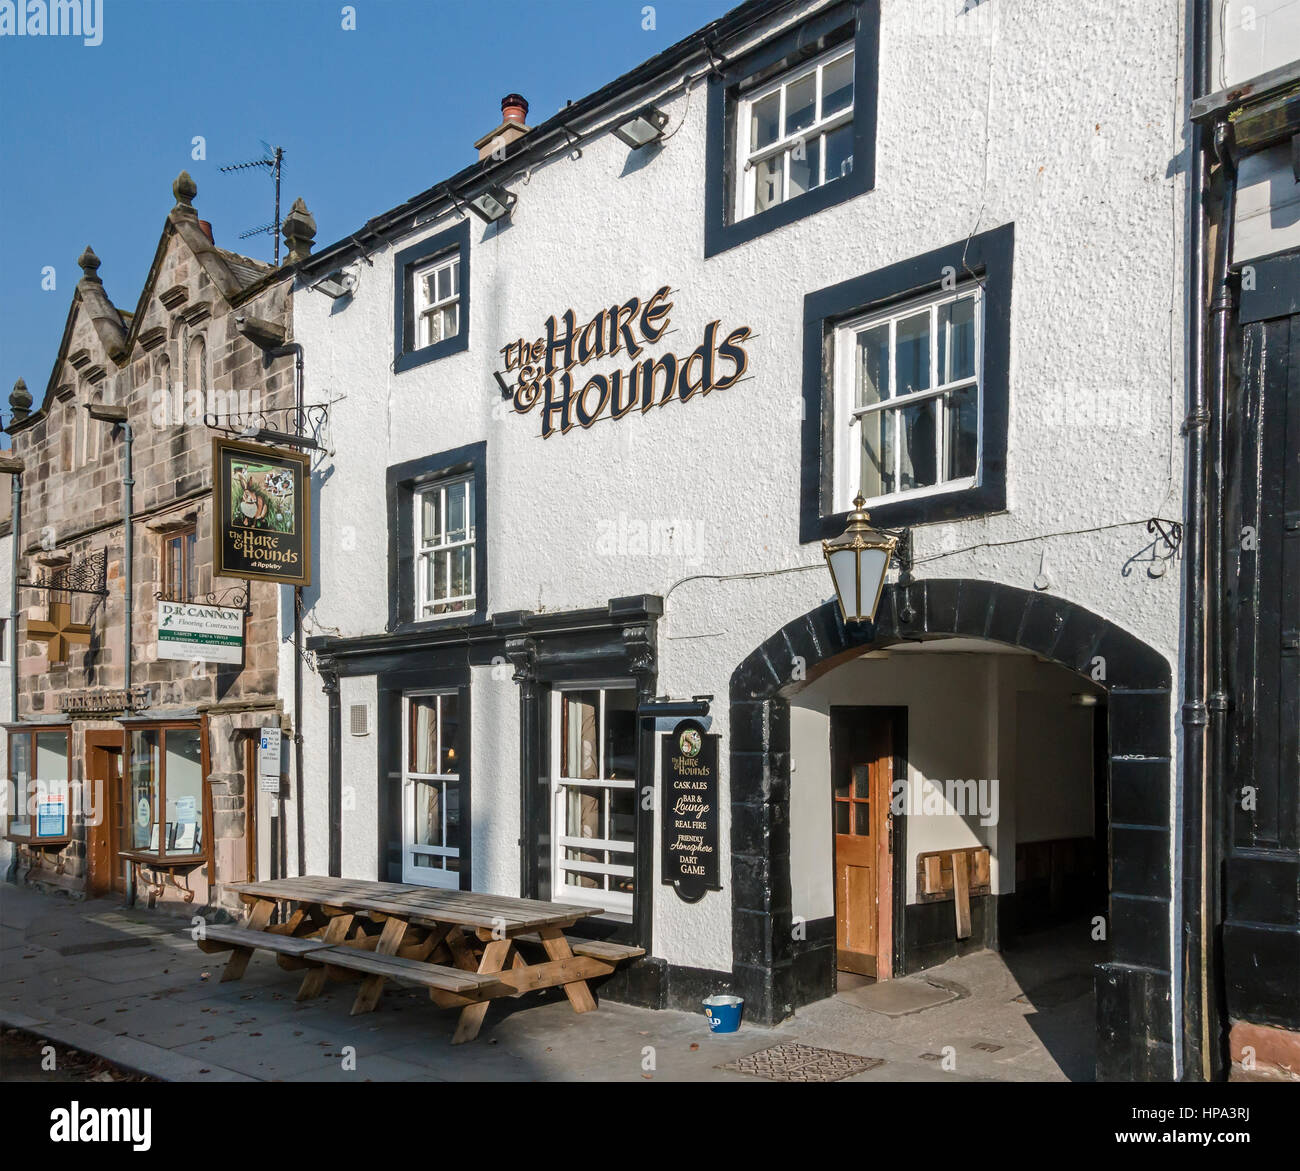 The Hare & Hounds pub in the main street of Appleby-in-Westmorland Cumbria England UK - Stock Image